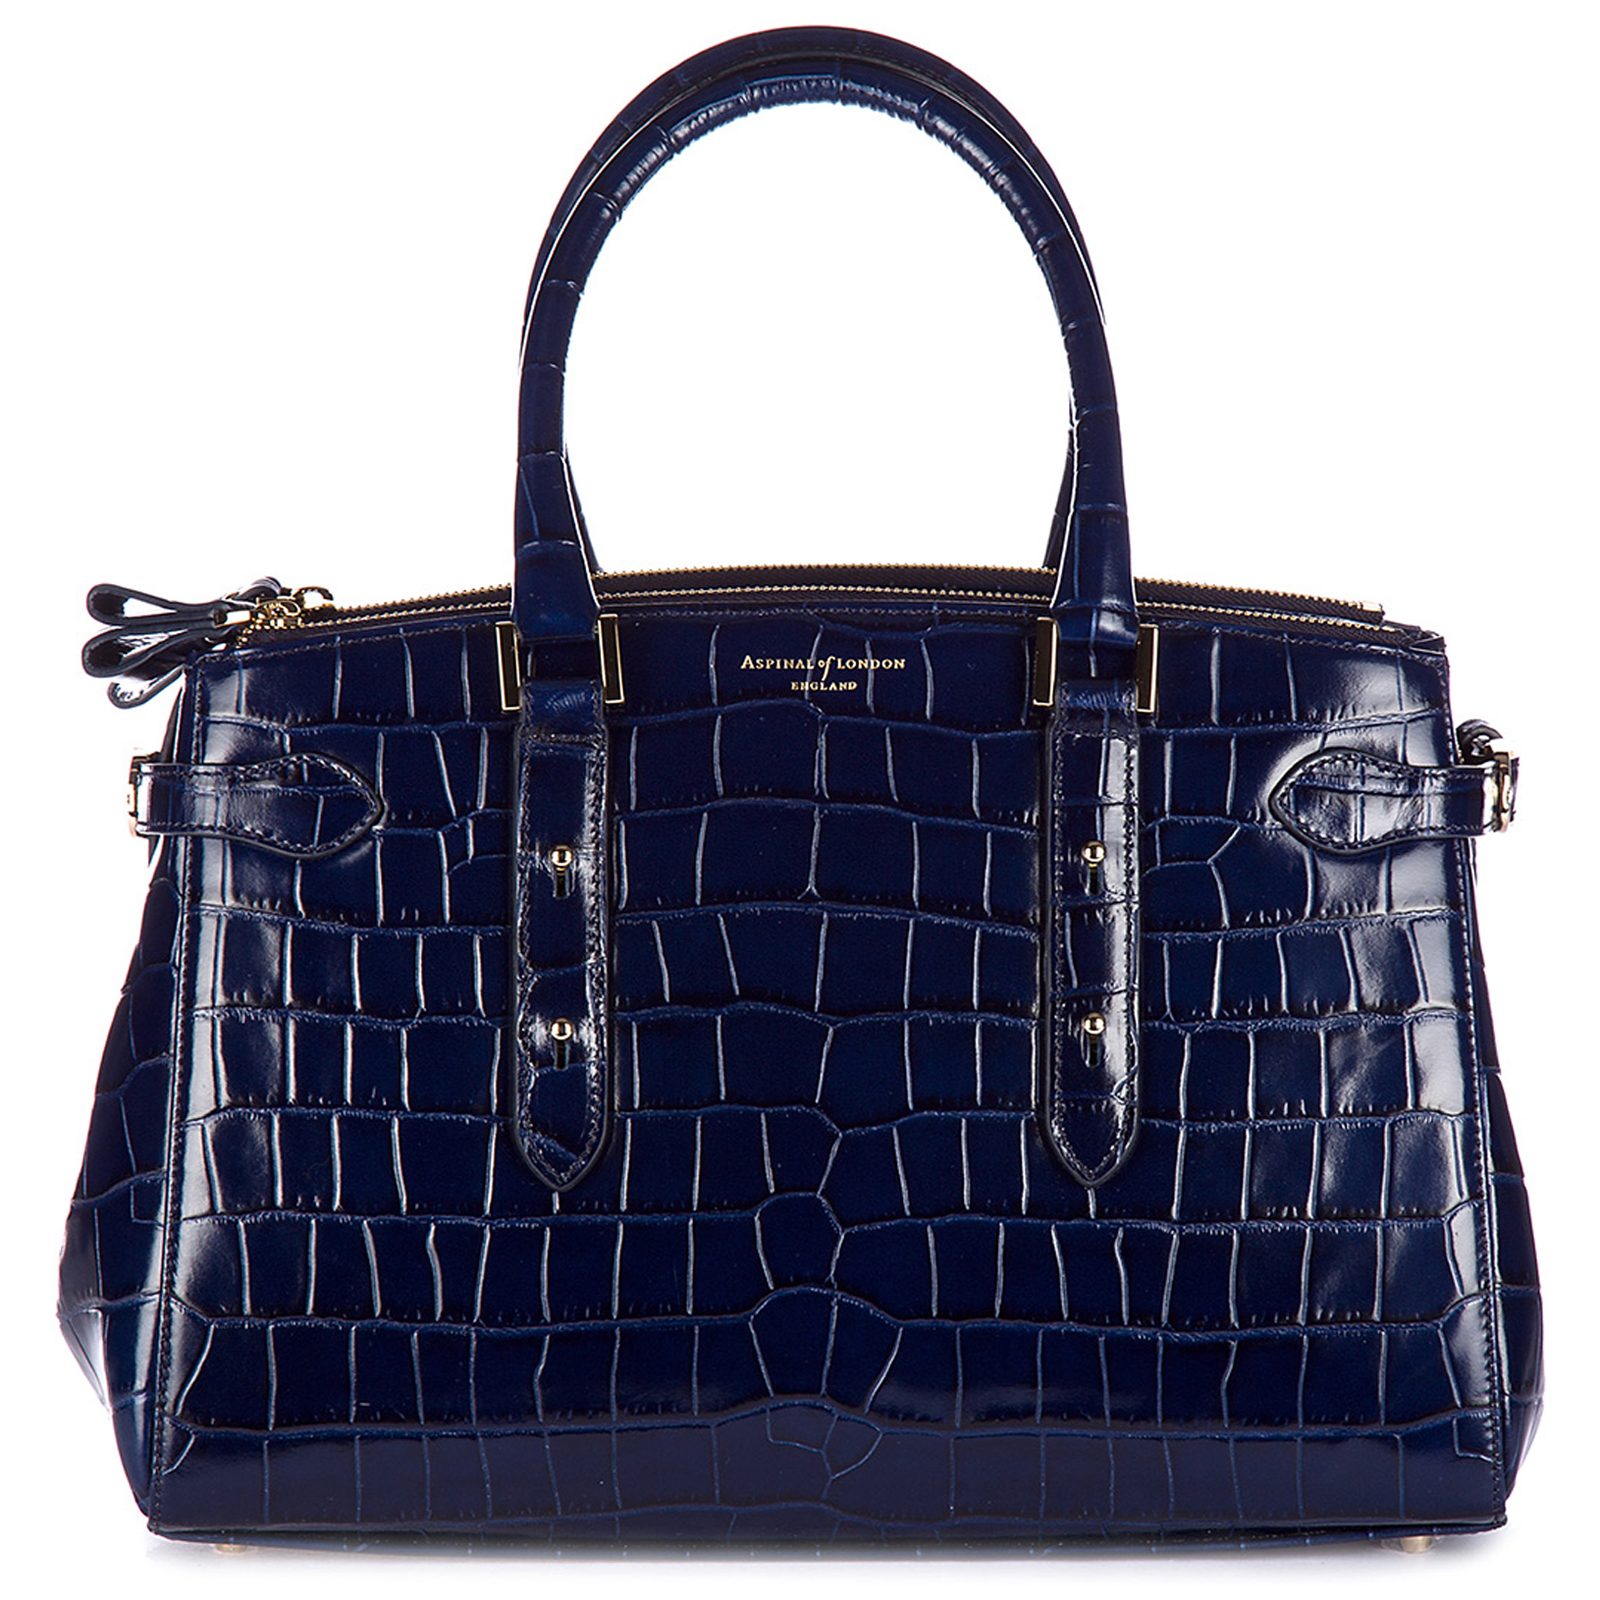 new release available uk store Women's leather handbag shopping bag purse brook street